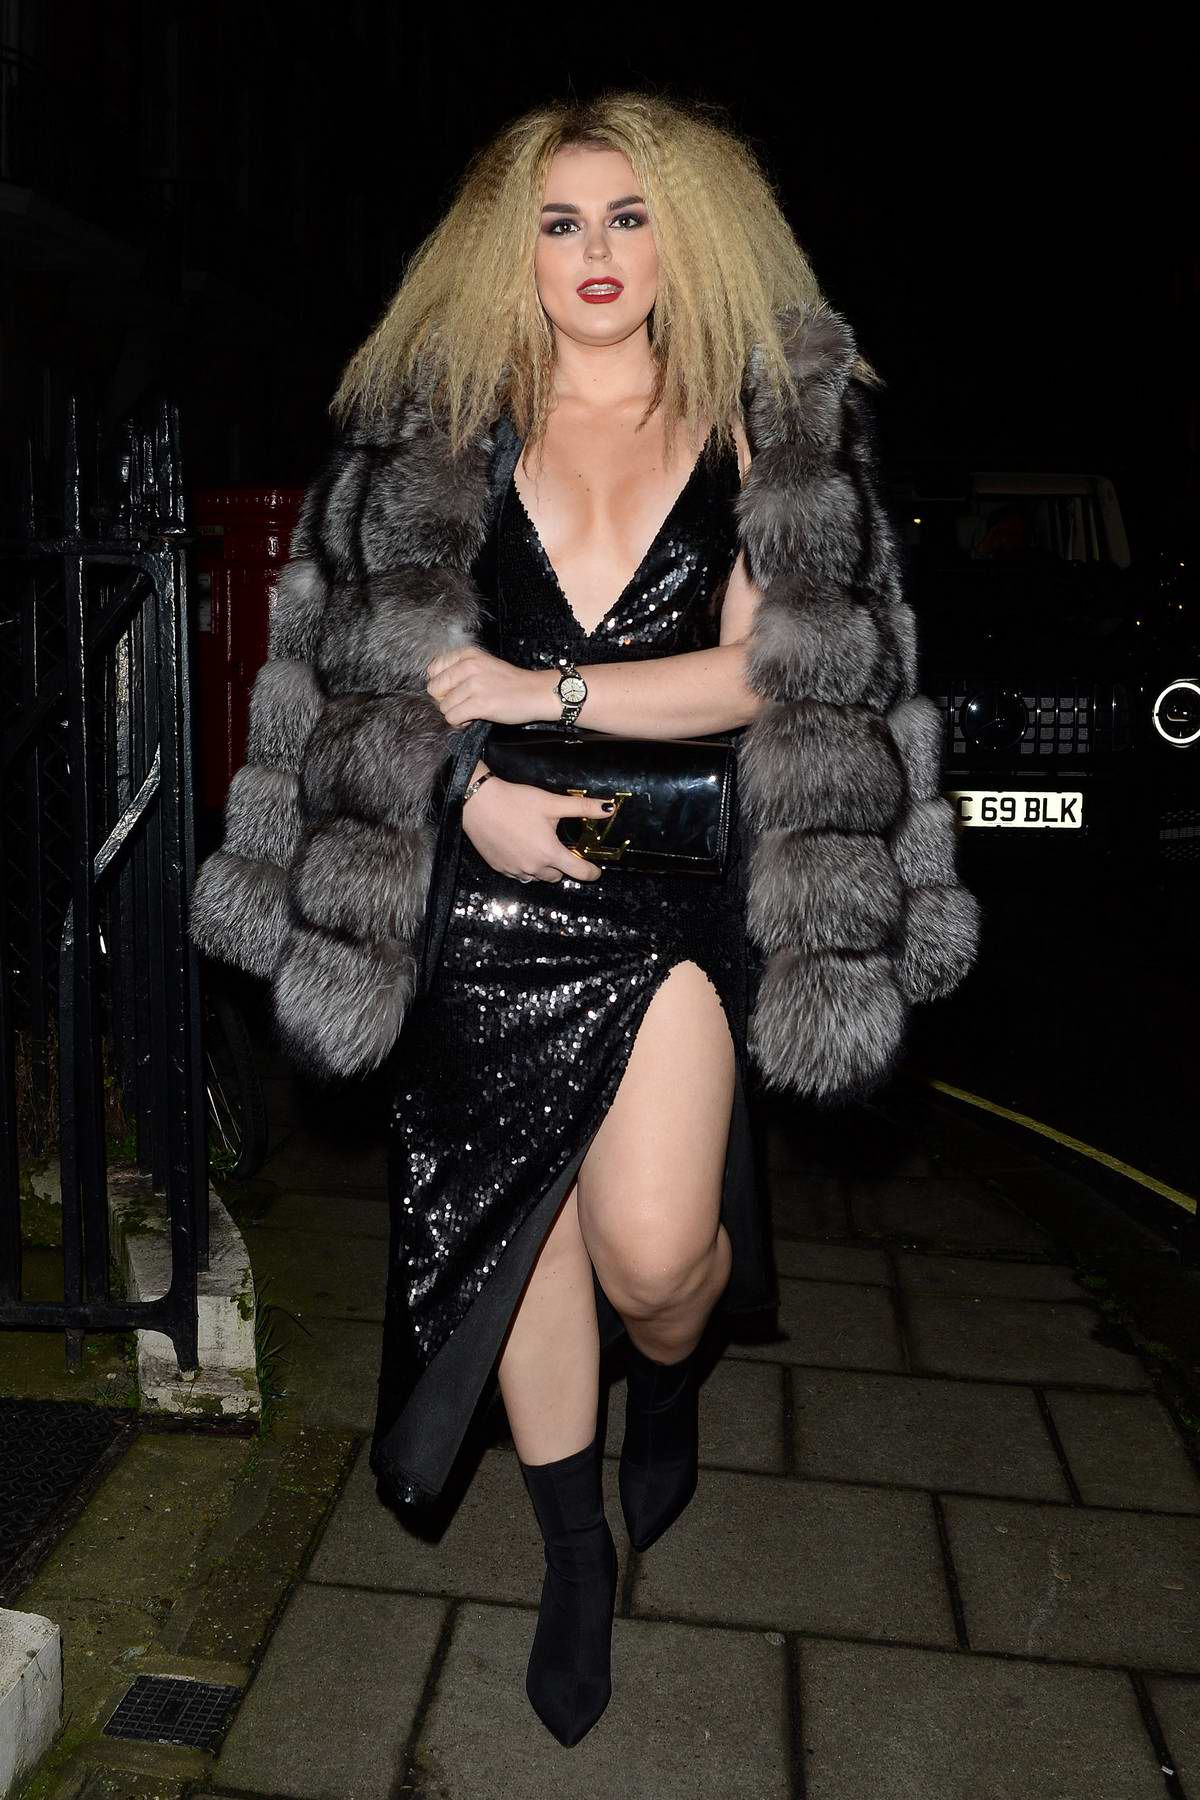 Tallia Storm attends Tom Ford Fragrance Launch at Marks Club Mayfair in London, UK